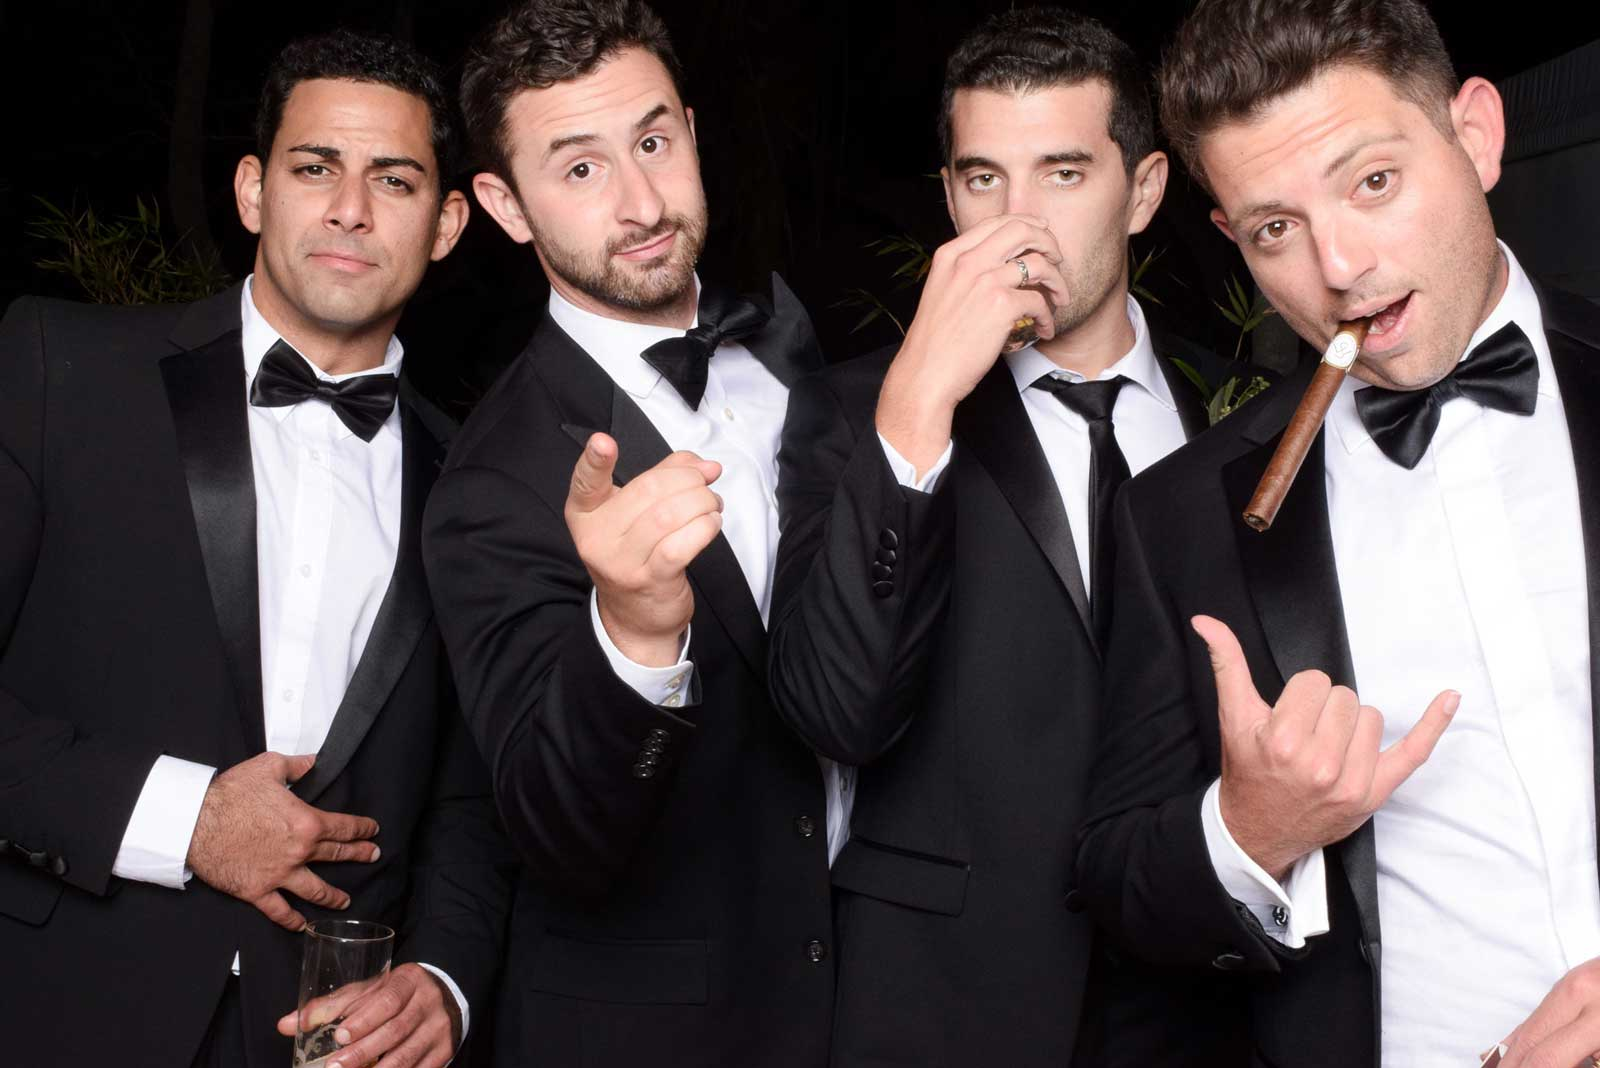 4 guys with Cigars taking a picture with the Photo Booth